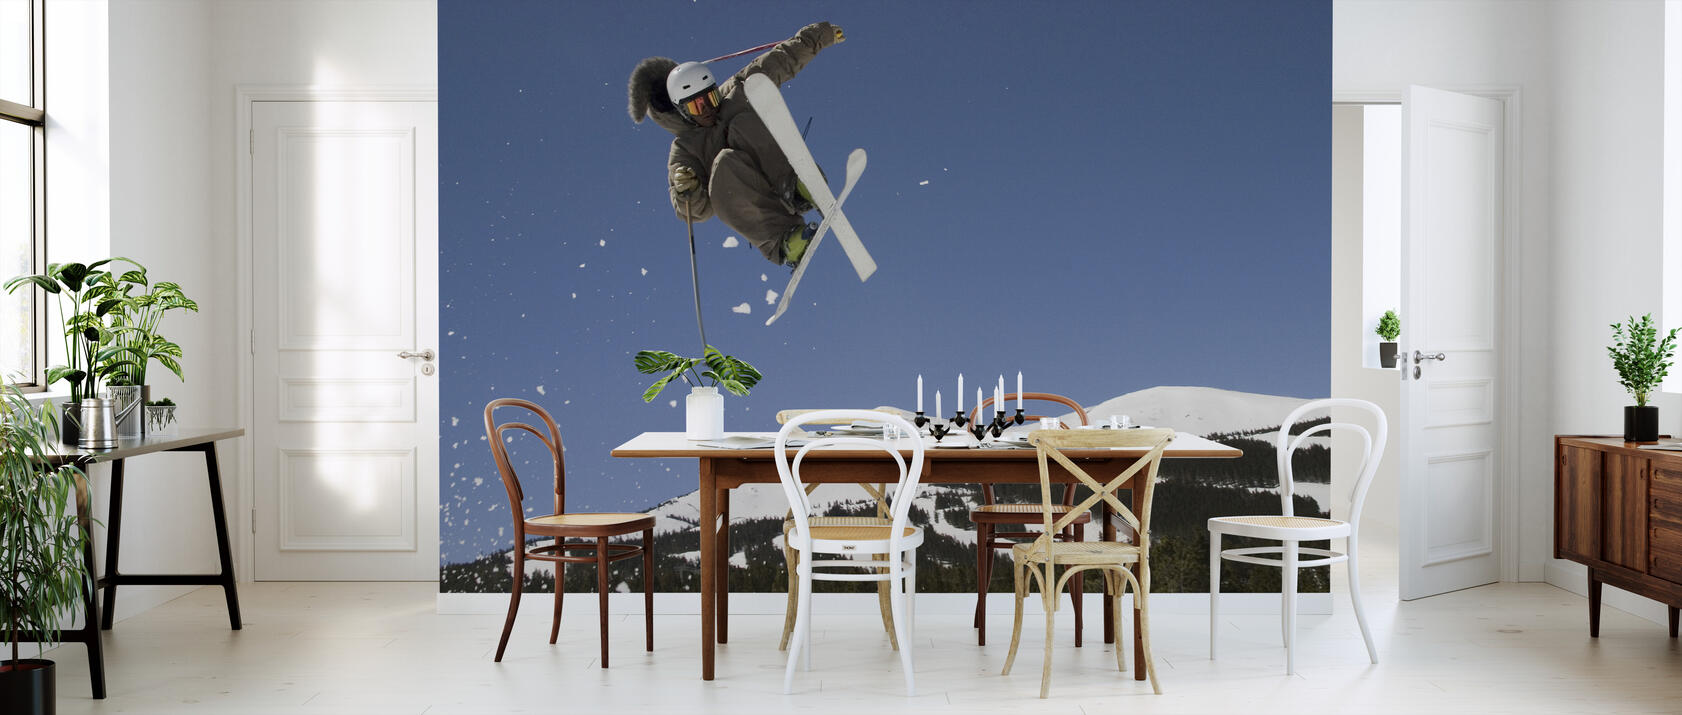 superpipe skier fototapete nach ma photowall. Black Bedroom Furniture Sets. Home Design Ideas